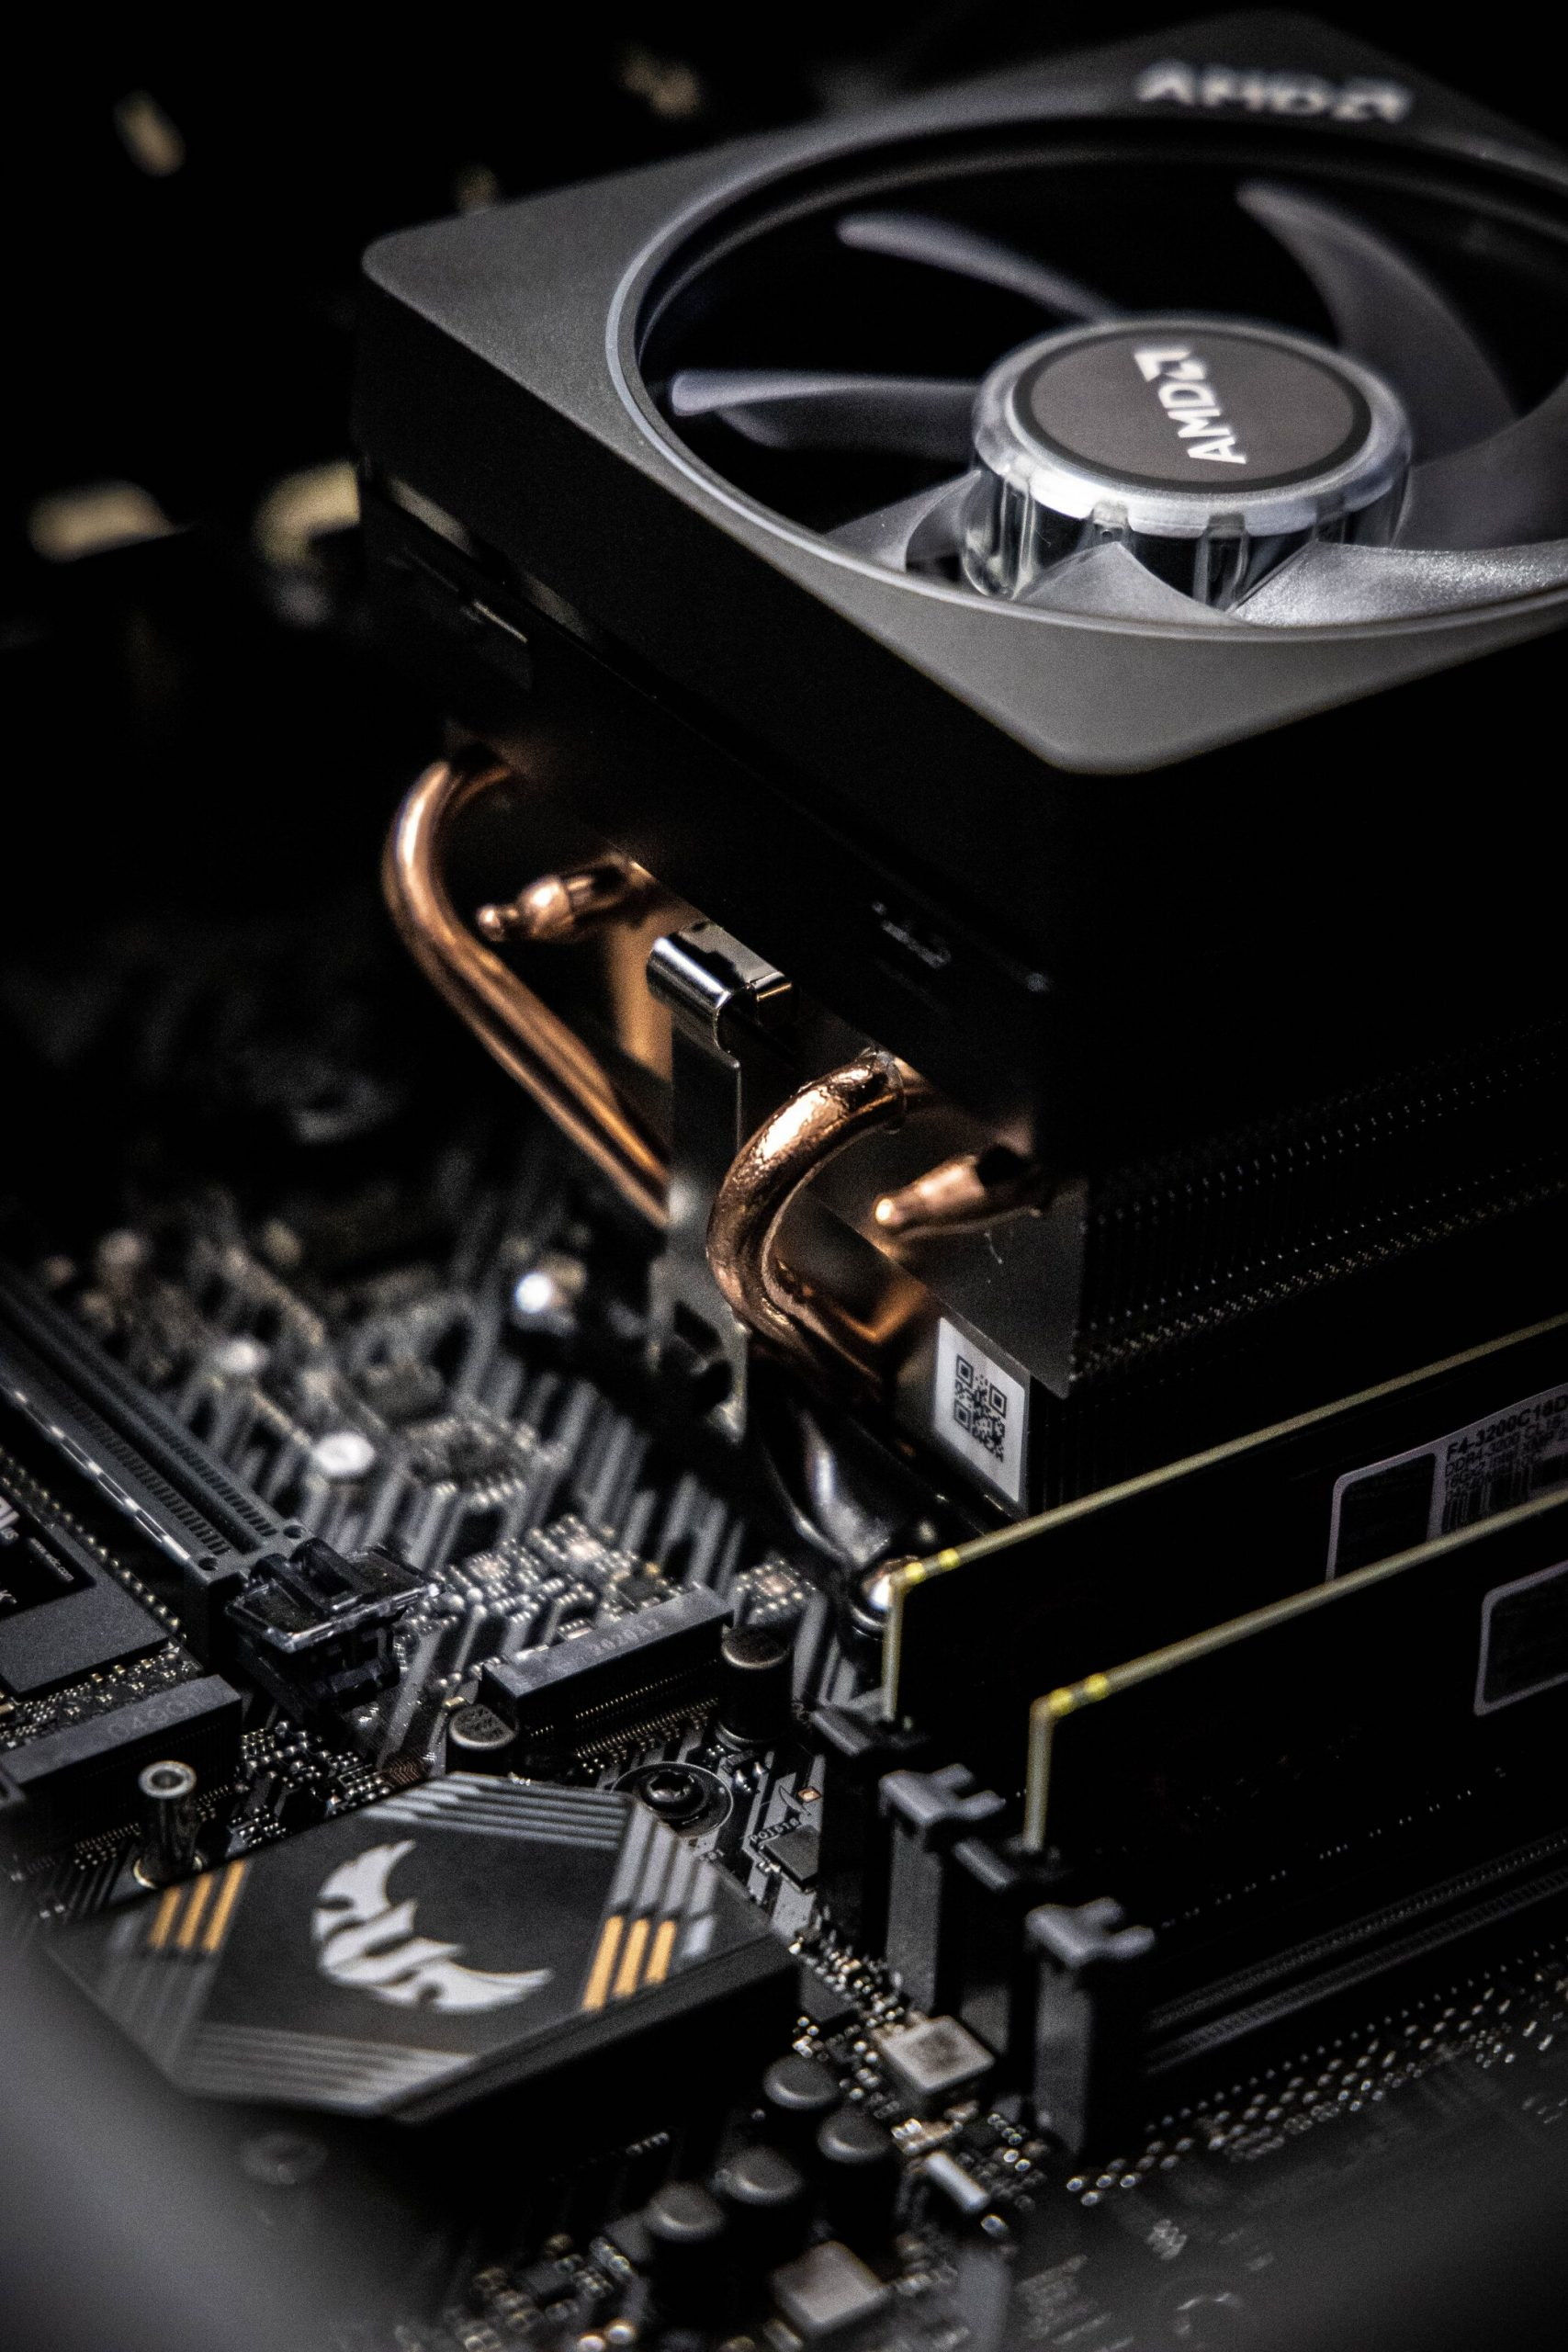 motherboard with cooler